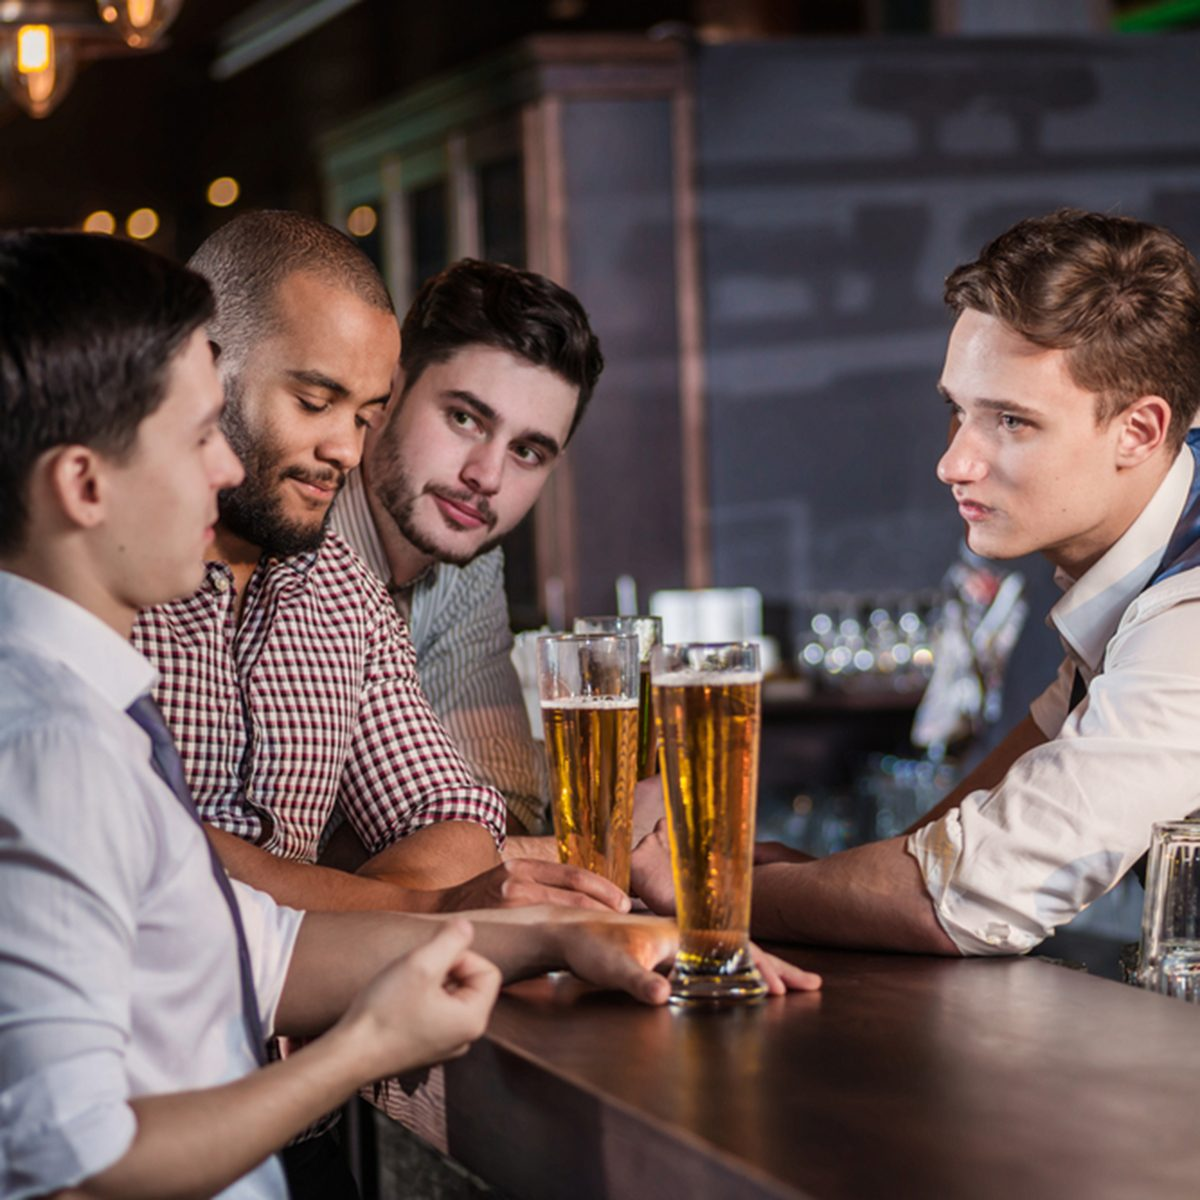 The bartender takes orders for beer. Three cheerful friend makes ordering a beer from the bartender at the bar; Shutterstock ID 229951054; Job (TFH, TOH, RD, BNB, CWM, CM): TOH